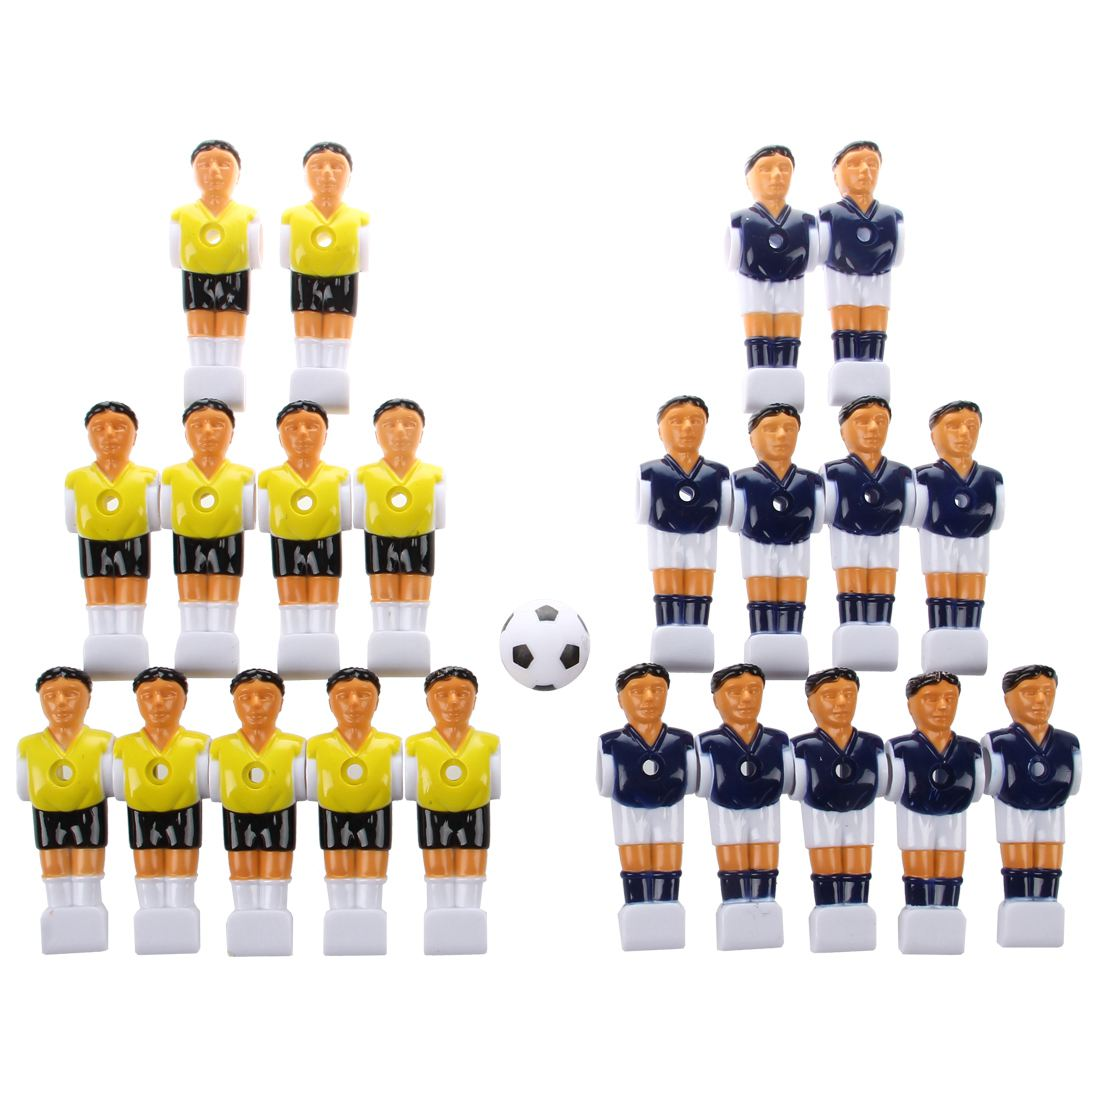 Super sell-22pcs Foosball Man Table Guys Man Soccer Player Part Yellow+Royal Blue with Ball